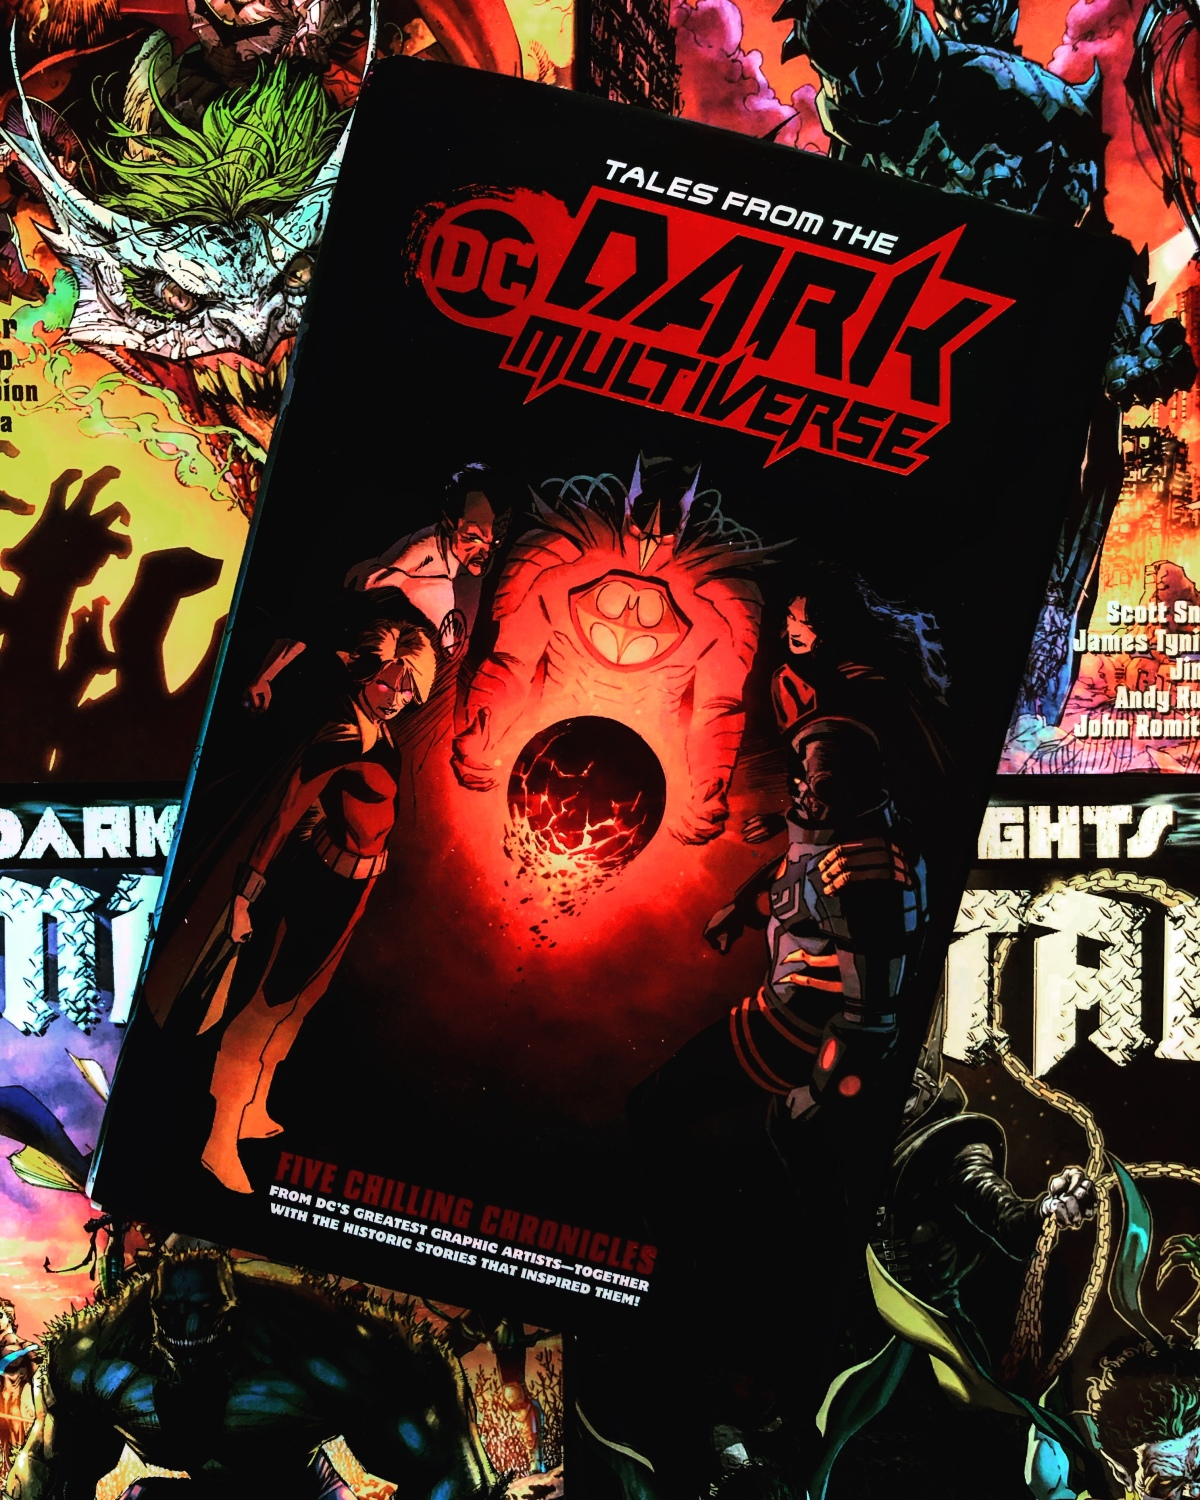 Tales from the Dark Multiverse #2: The Death ofSuperman